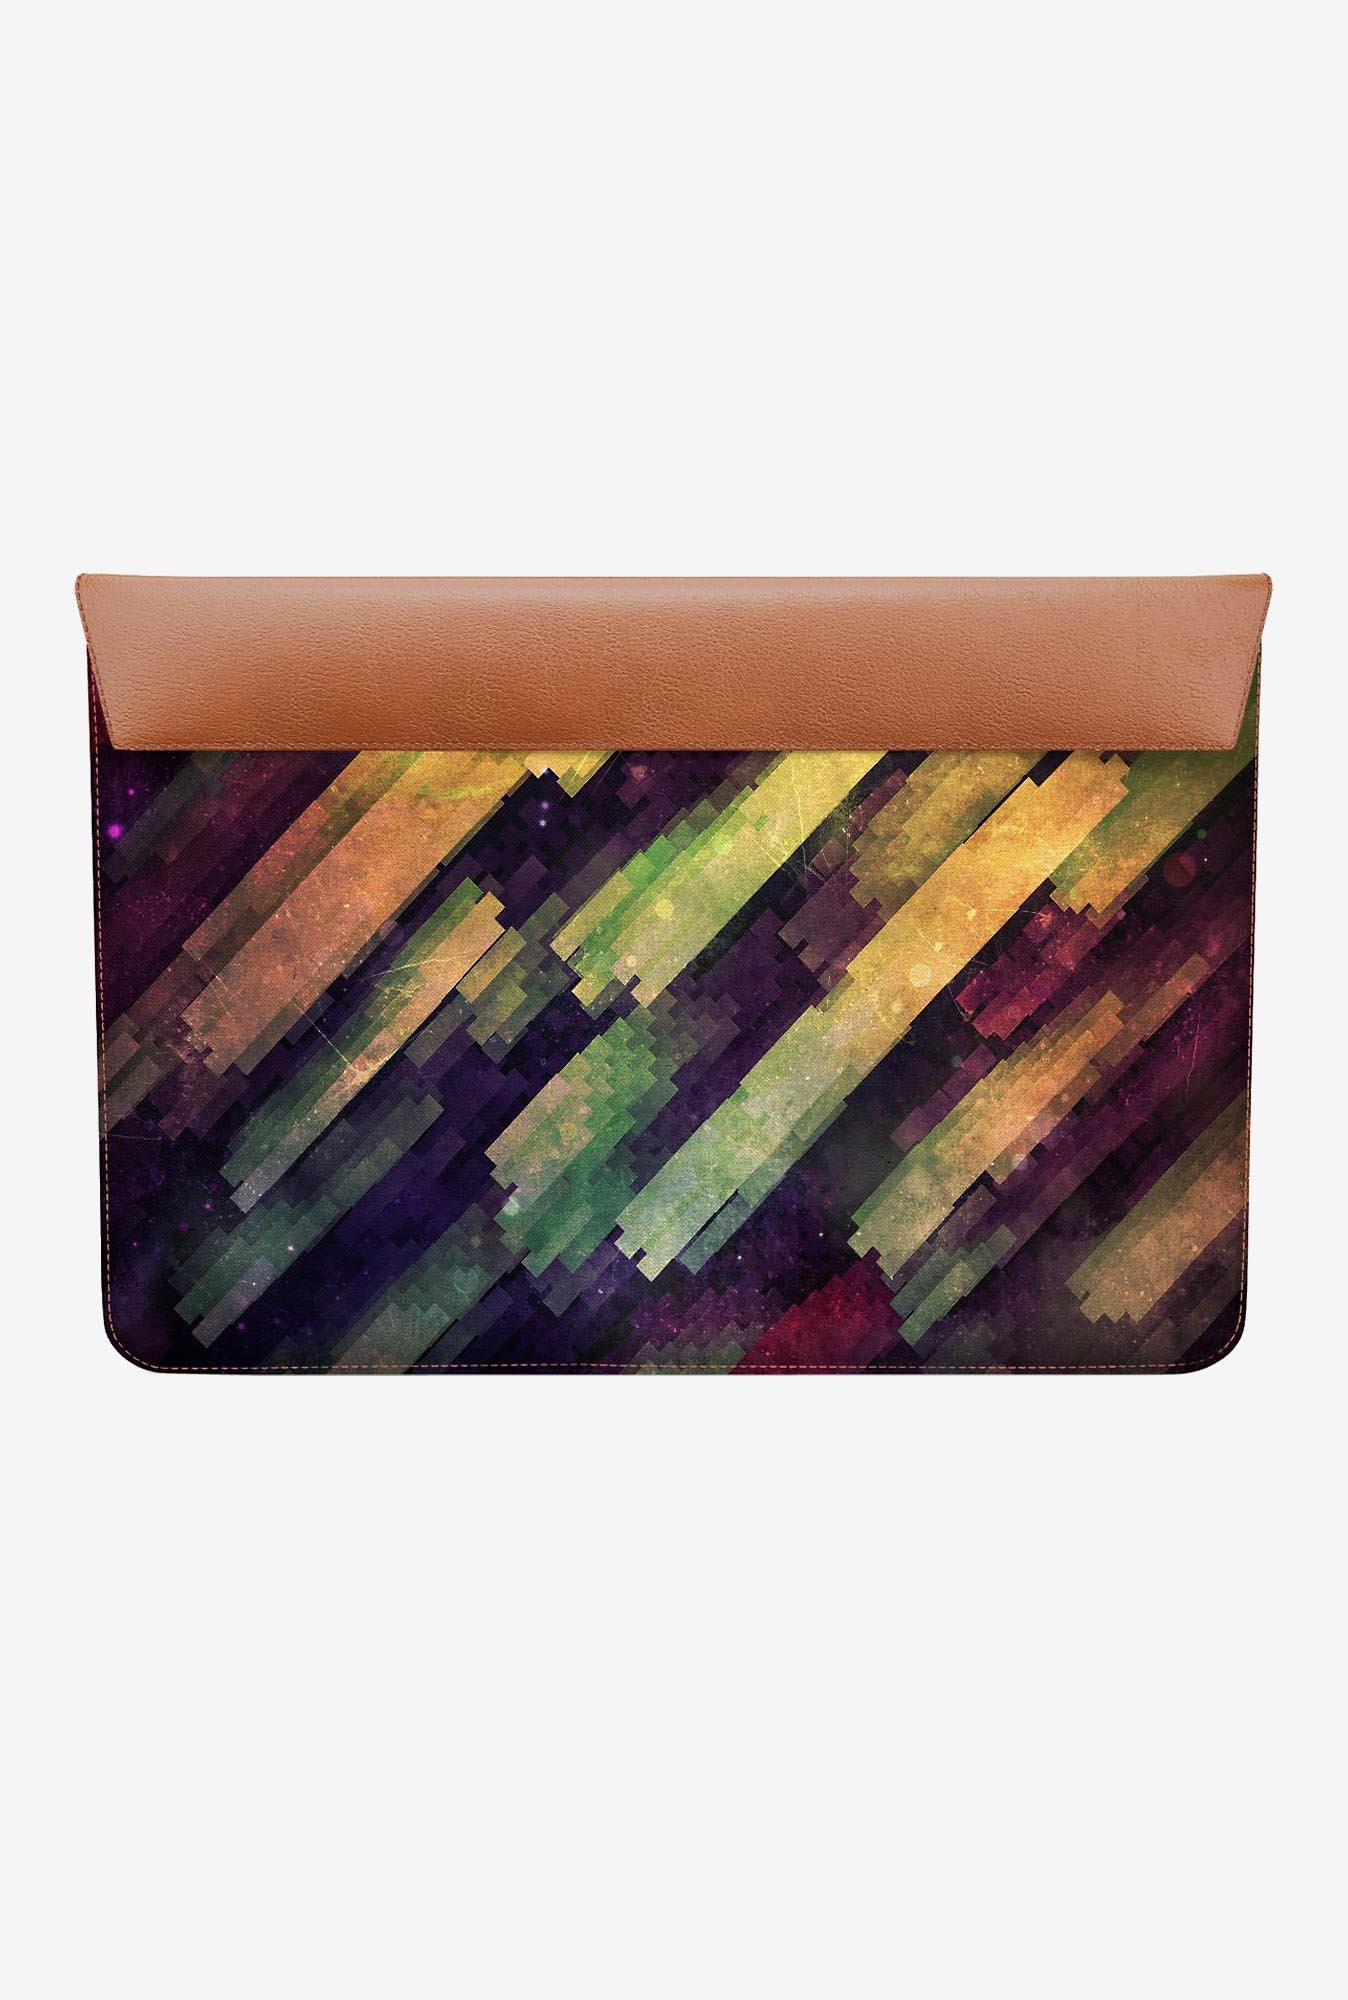 "DailyObjects Mytyyr Shwwr Macbook Air 11"" Envelope Sleeve"